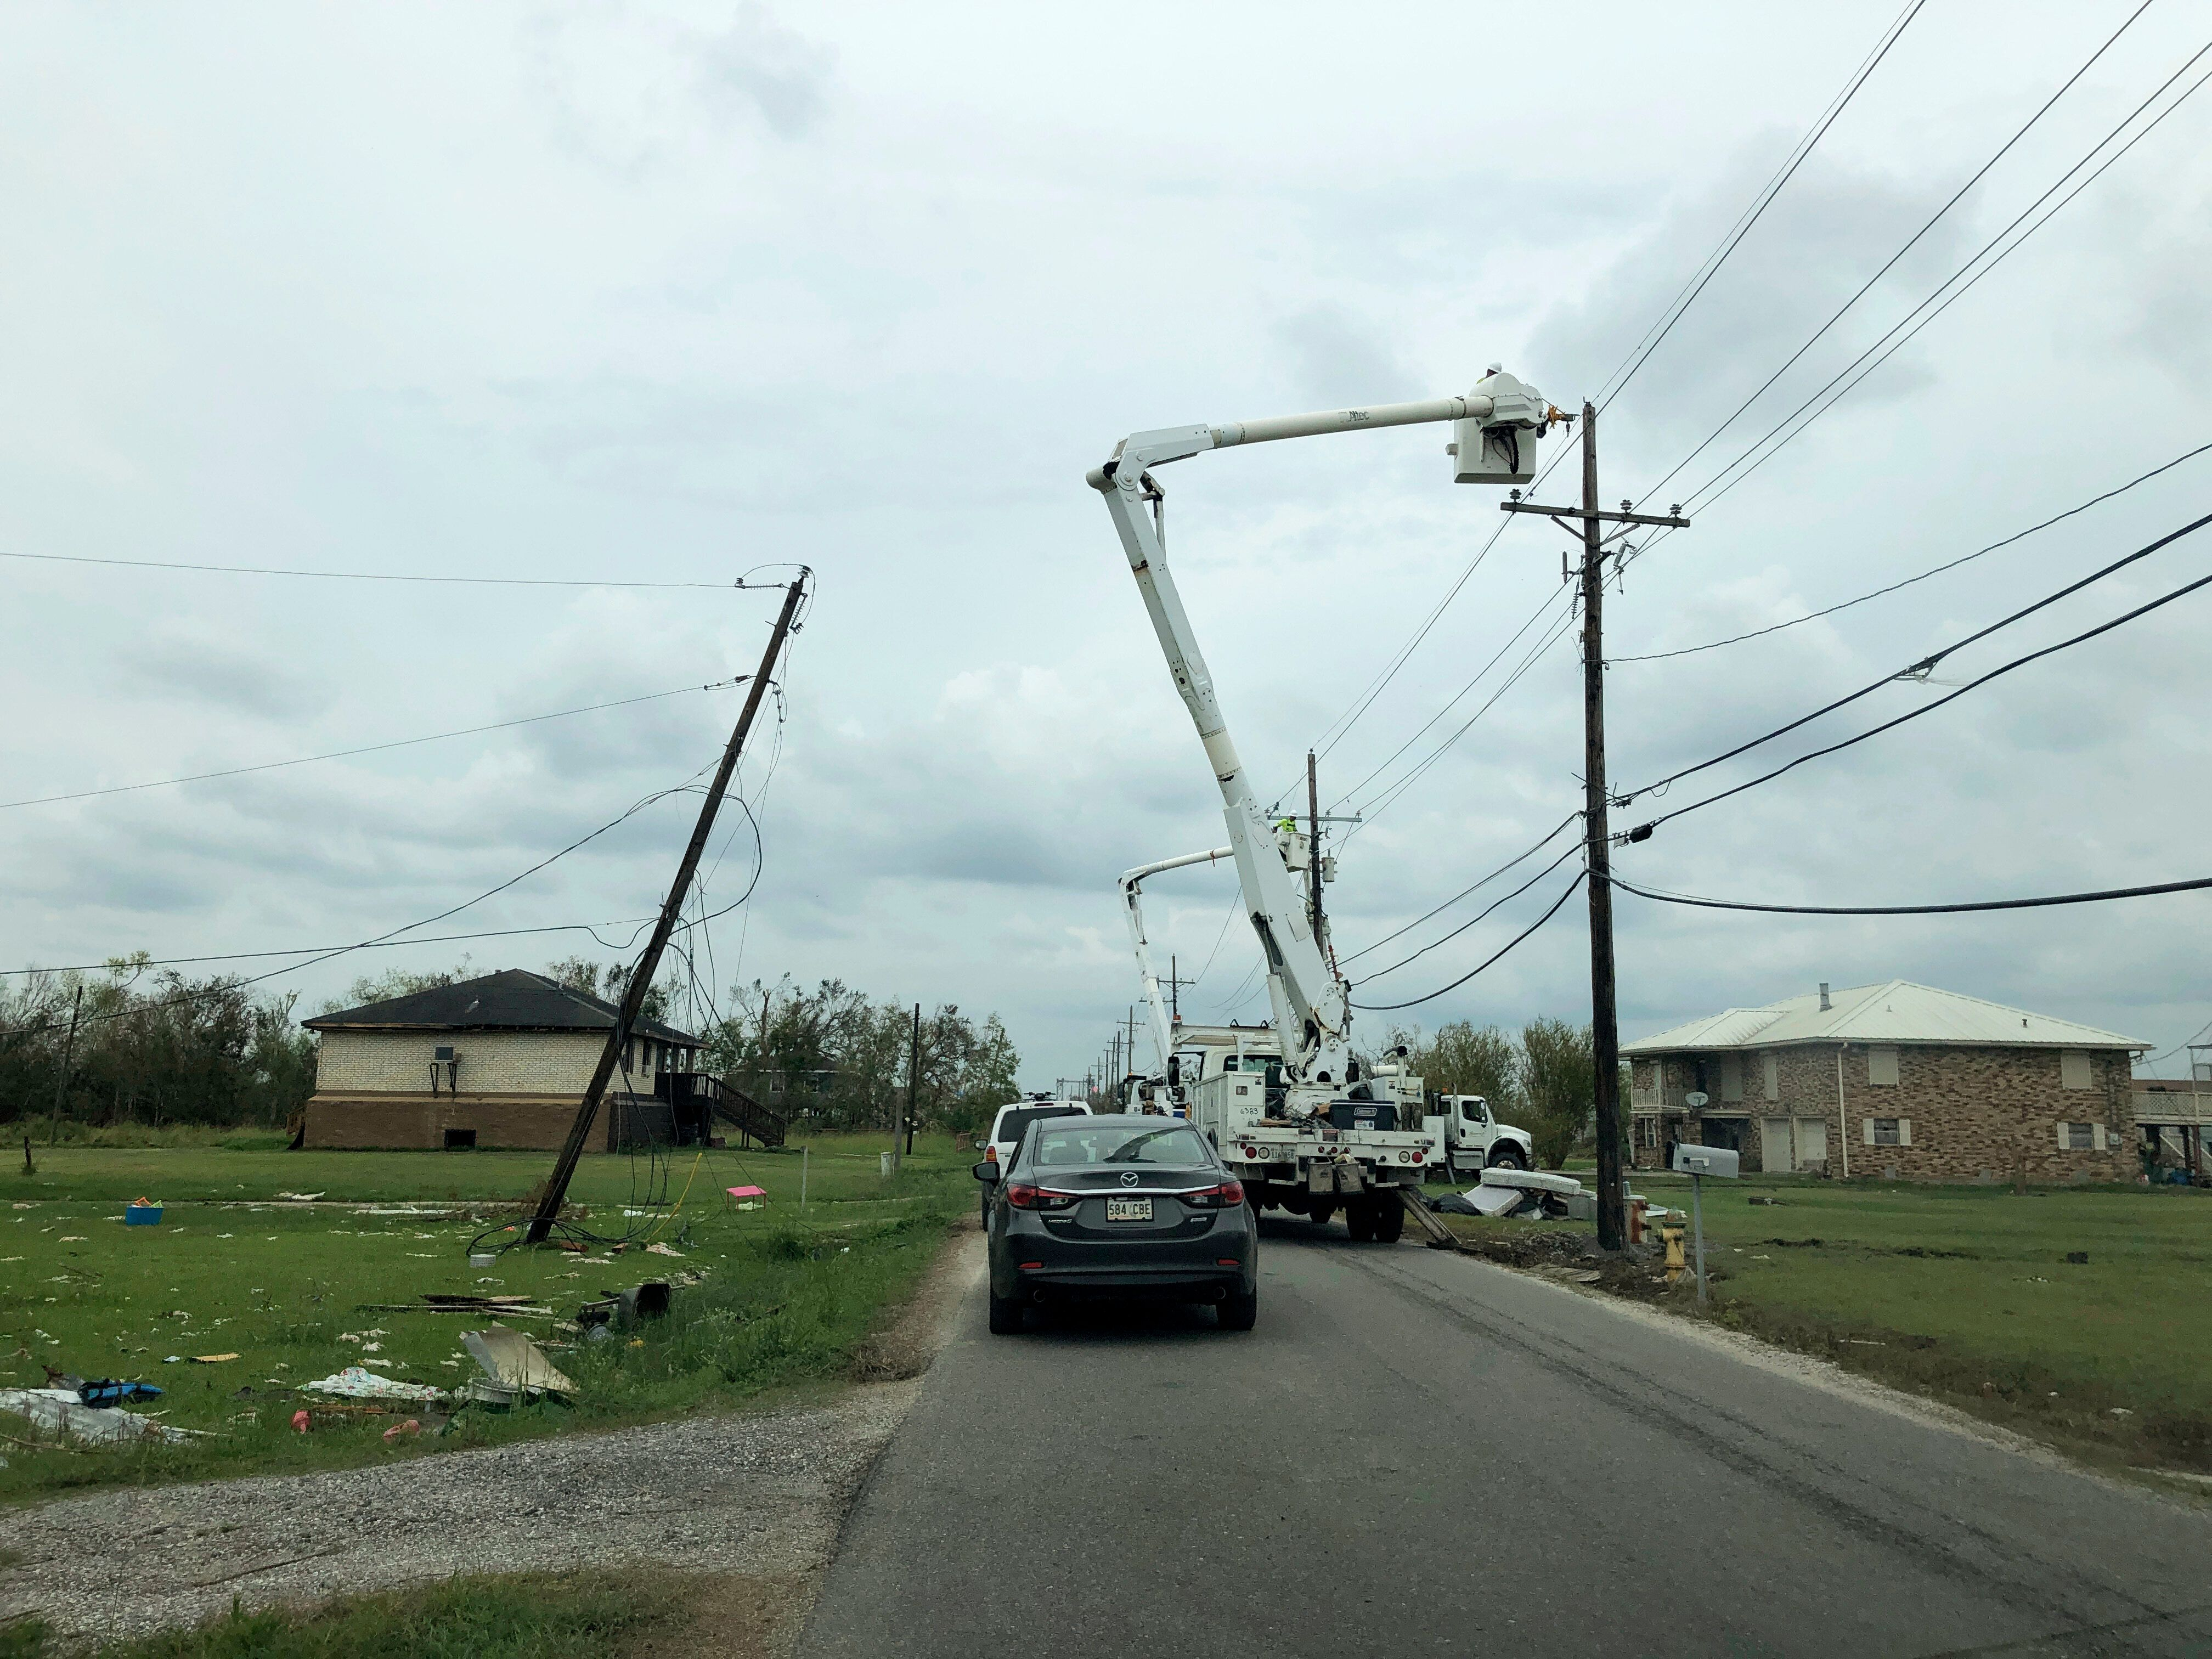 Ten days after Hurricane Ida hit Louisiana, many remained without electricity.